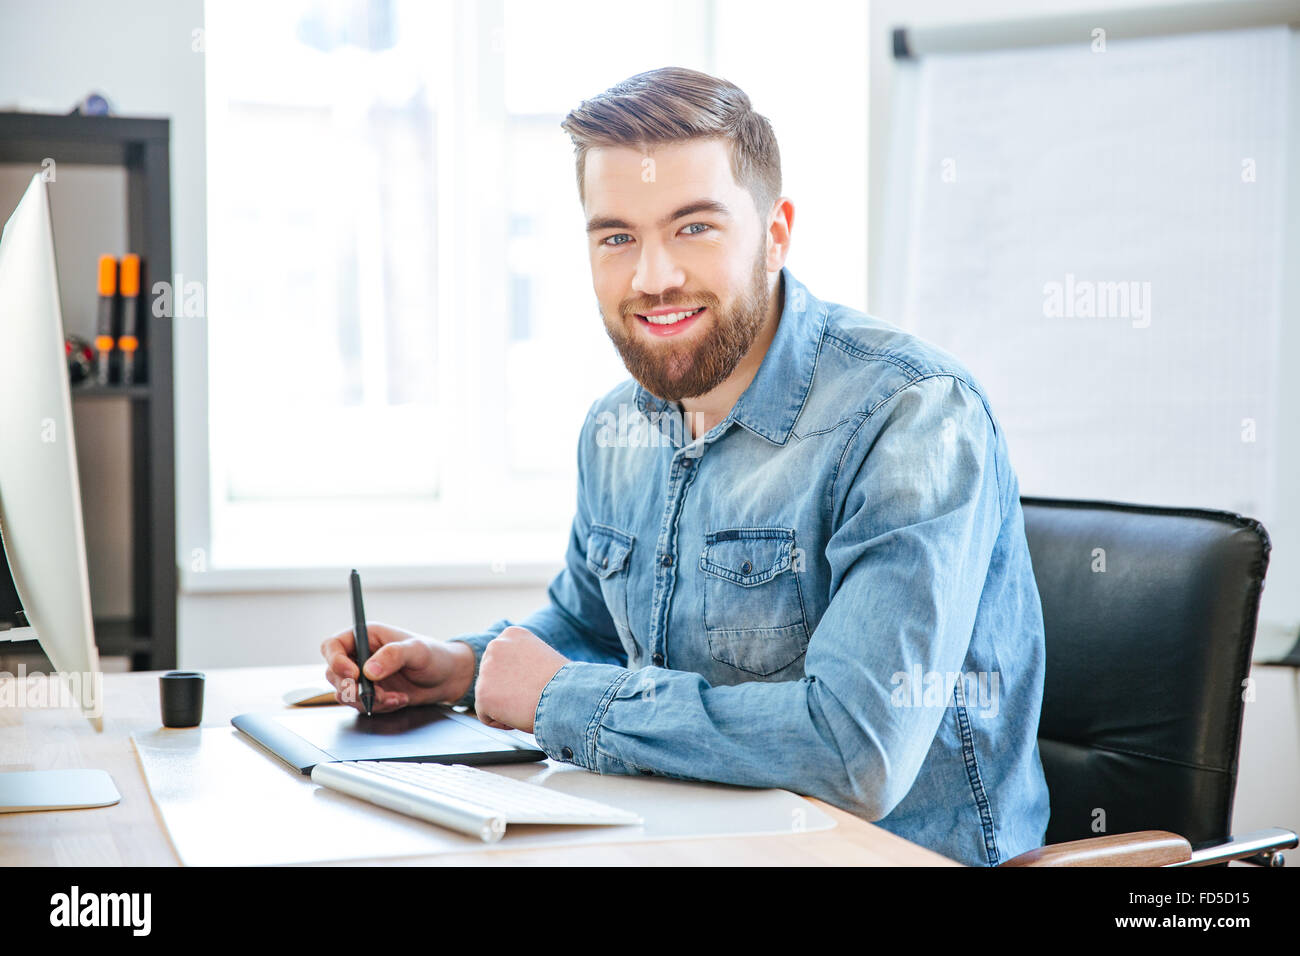 Portrait of happy young designer en jeans shirt travaillant à l'aide de tablette avec stylet in office Photo Stock